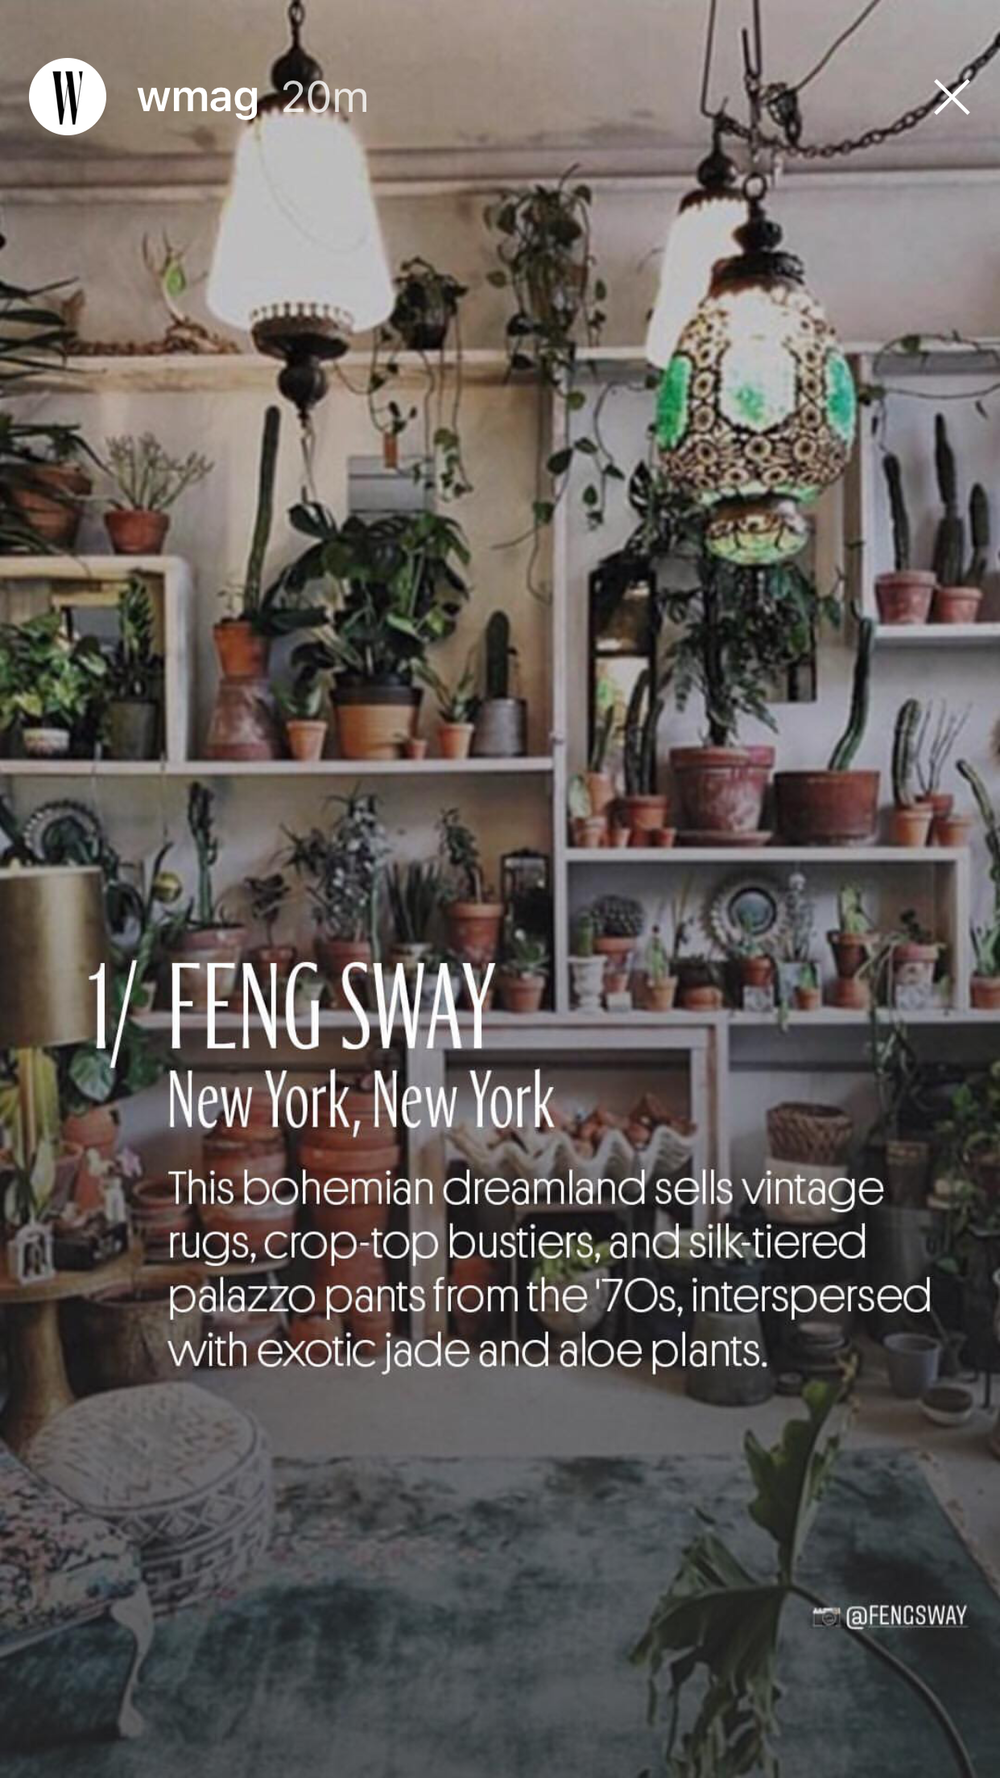 W MAGAZINE  #1 FENG SWAY